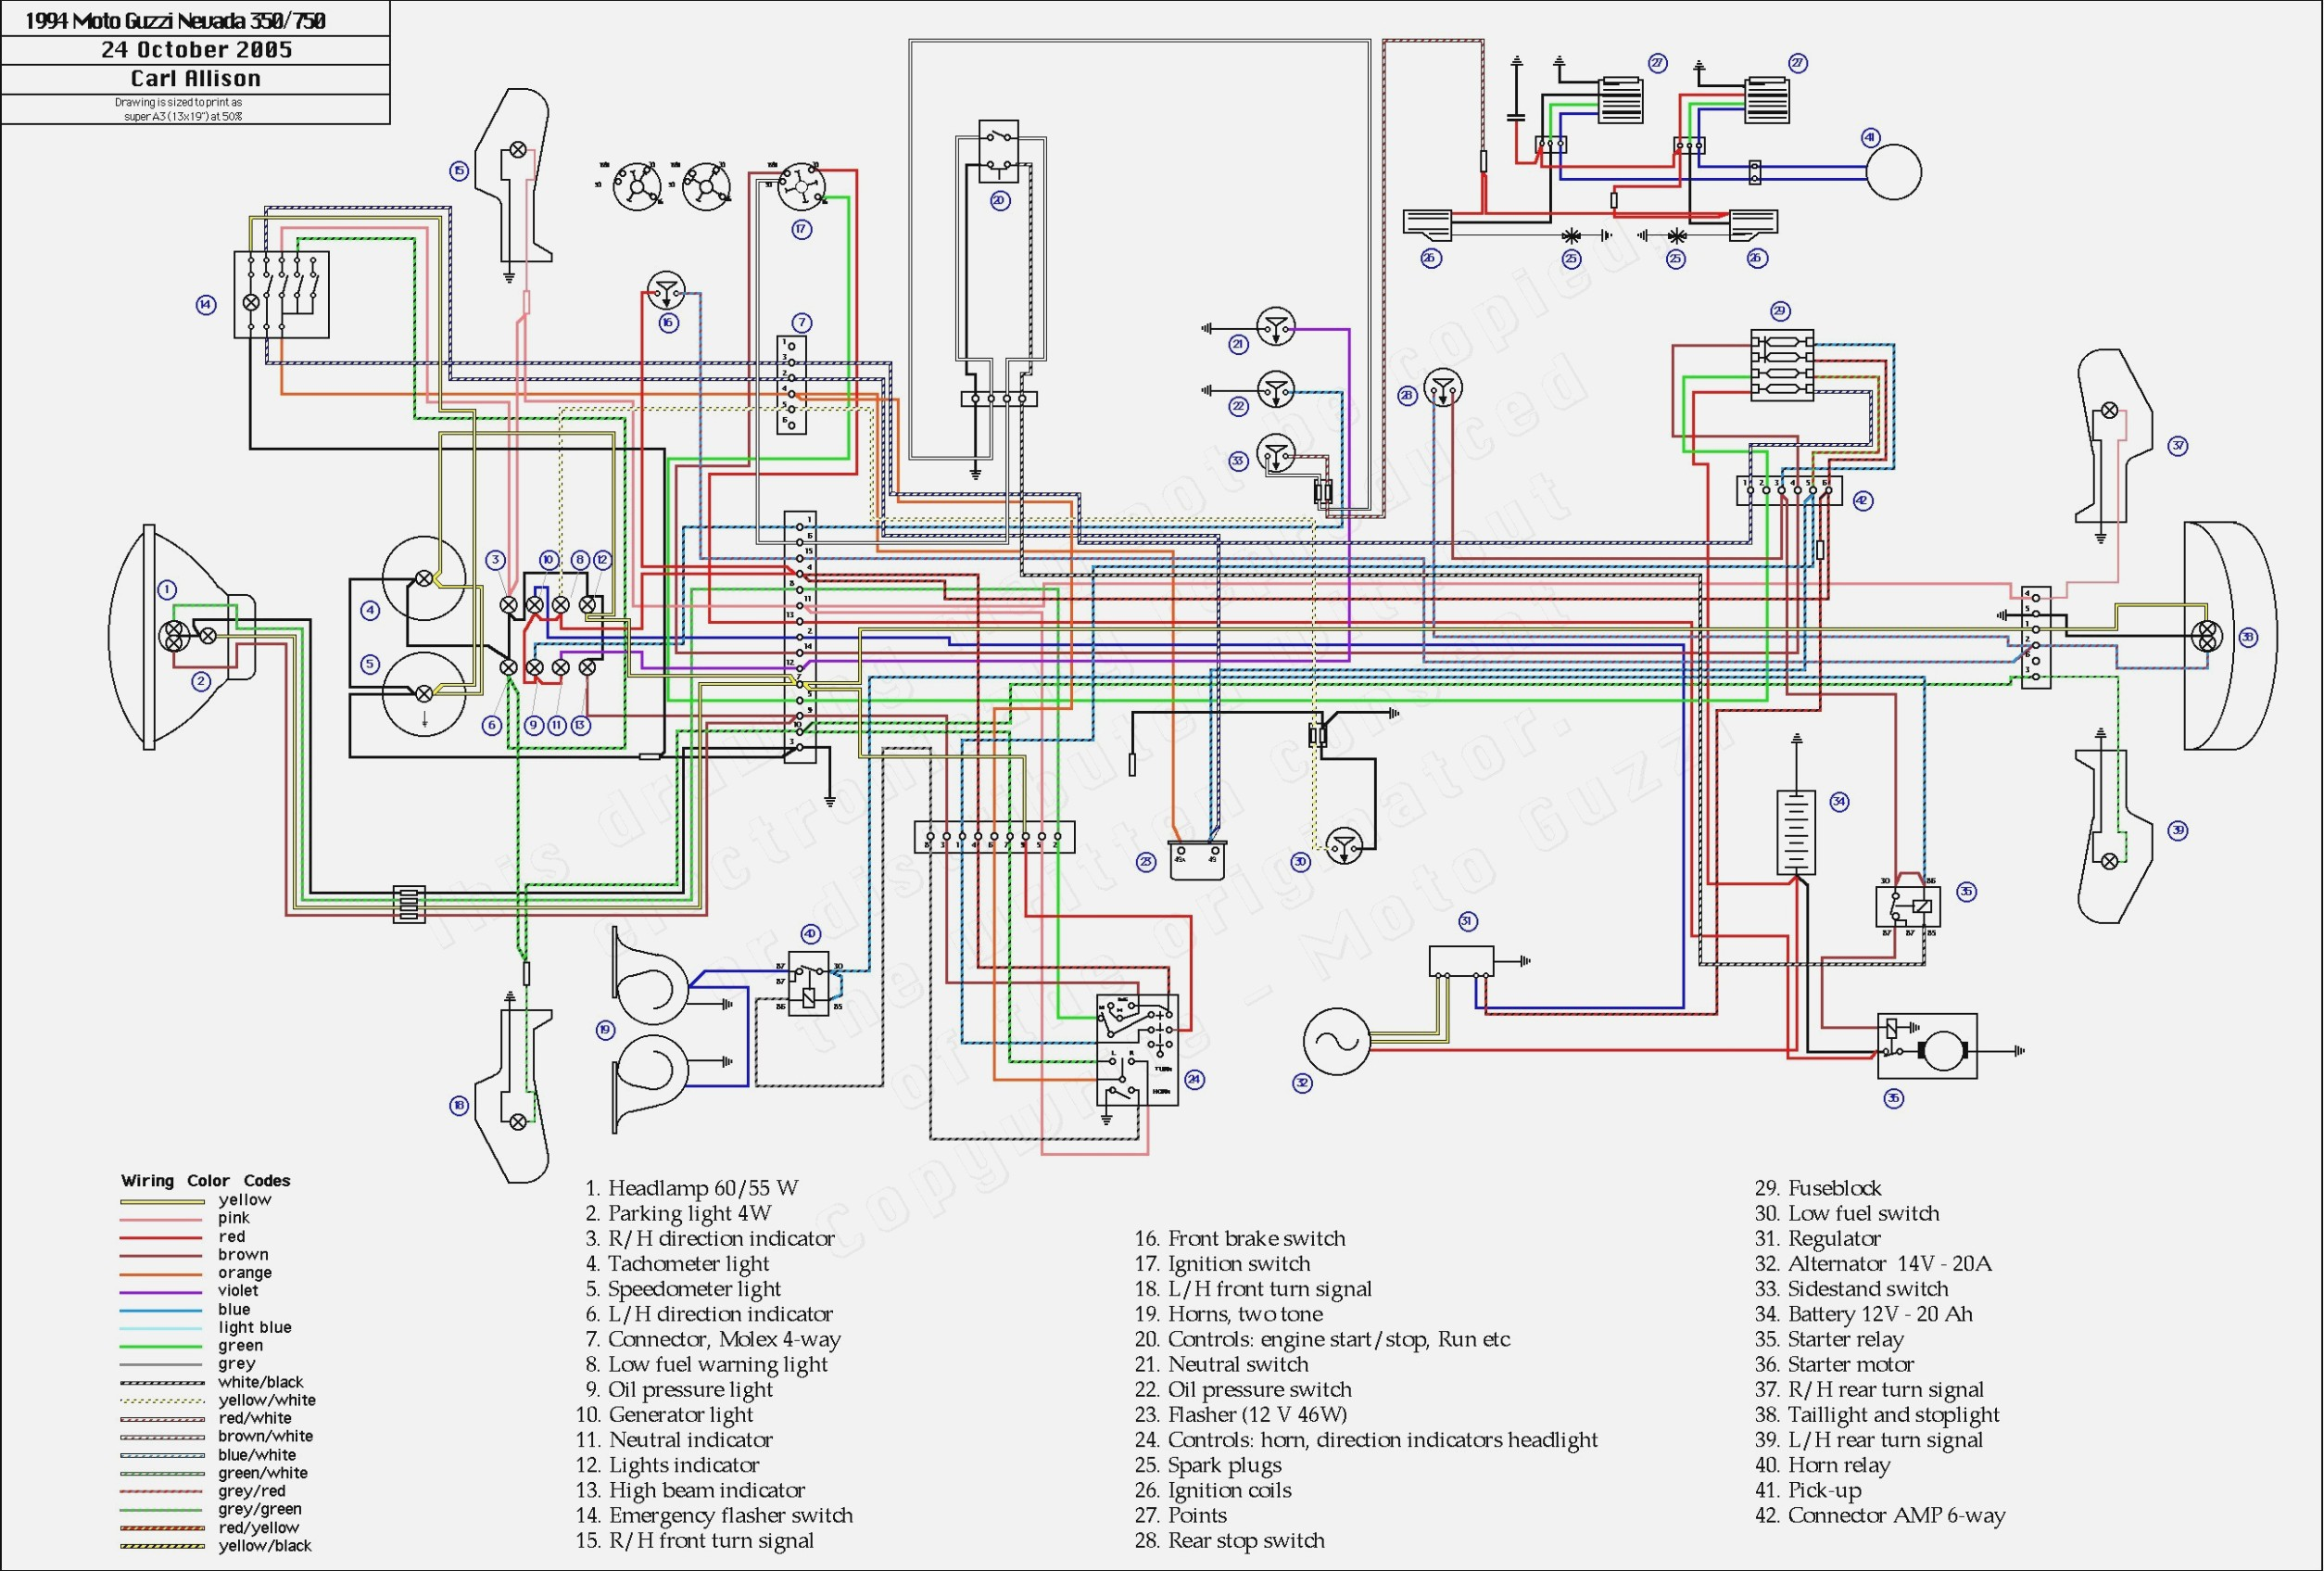 Turn Signal Flasher Wiring Diagram Dyna Turn Signal Wiring Diagram Wiring Diagram toolbox Of Turn Signal Flasher Wiring Diagram Free Download S Series Wiring Diagram Wiring Diagram Database